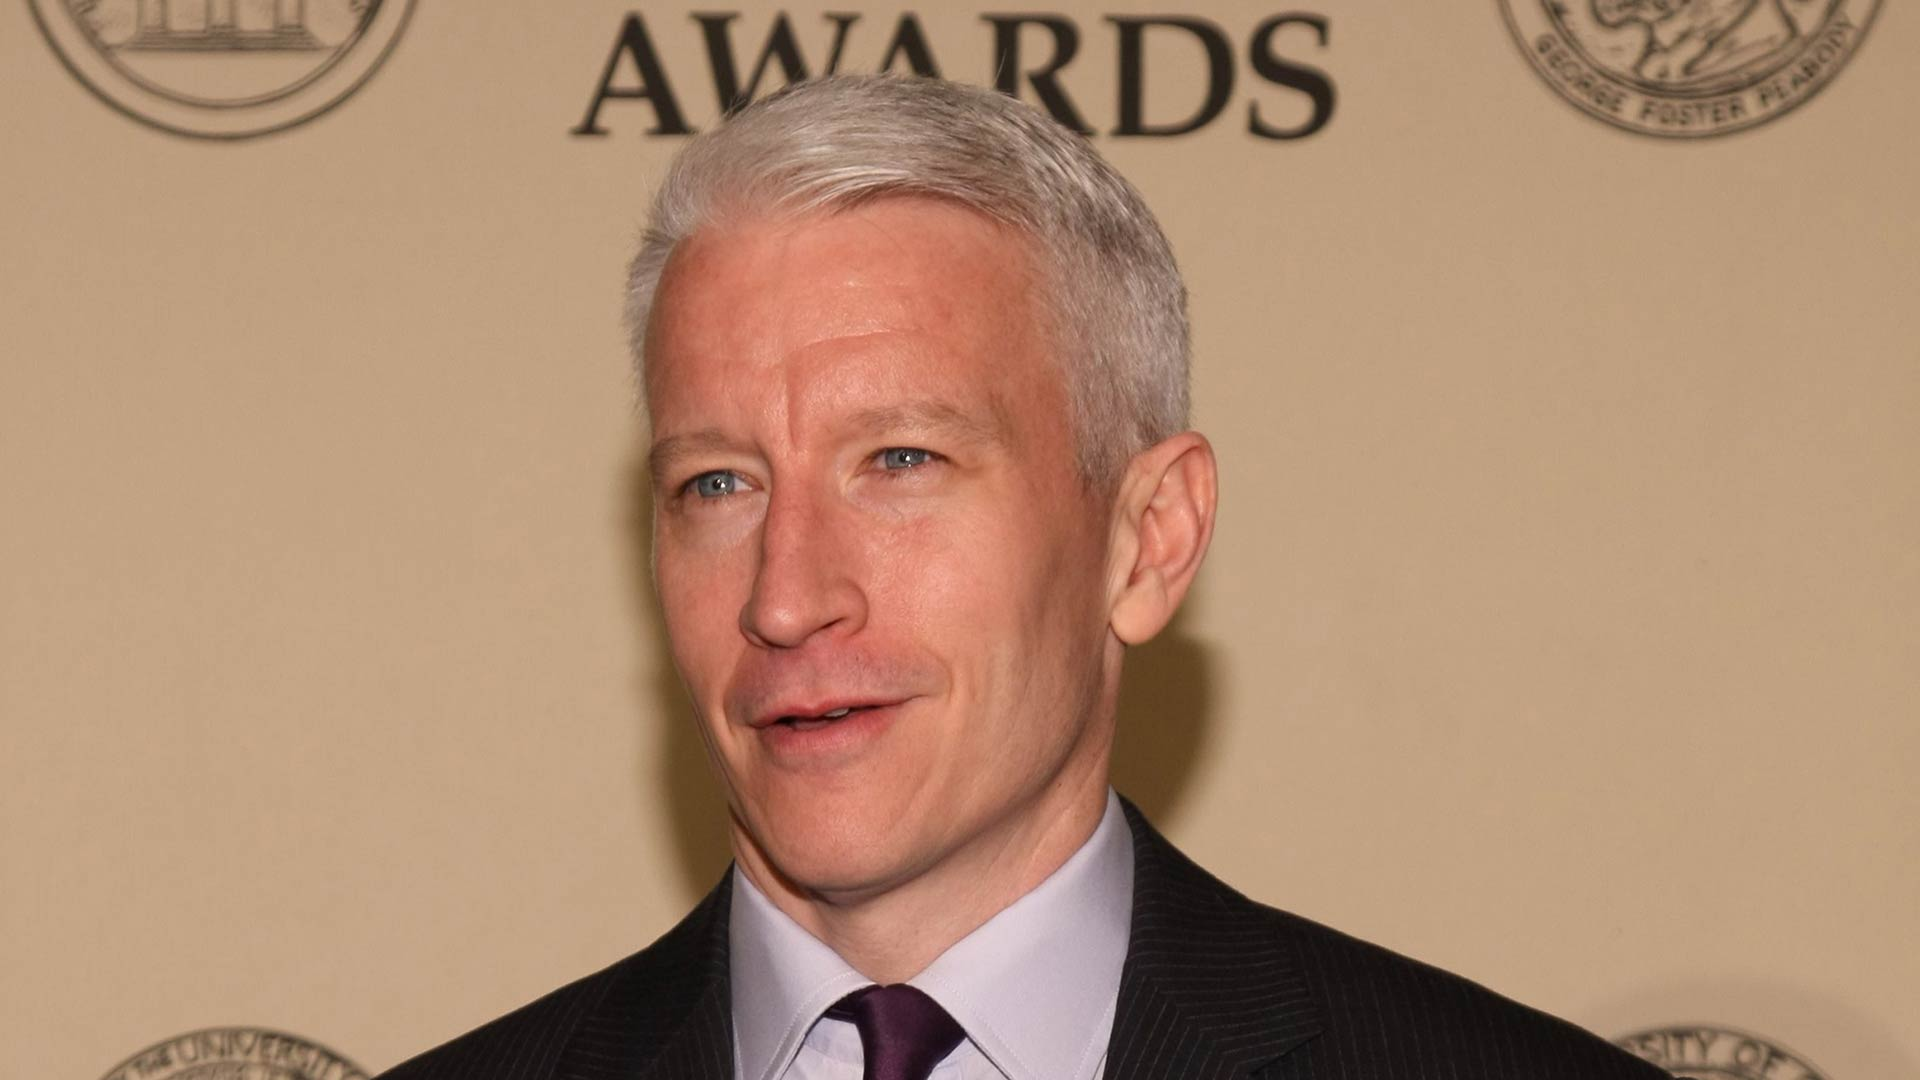 Anderson Cooper at the Peabody Awards luncheon in 2012.